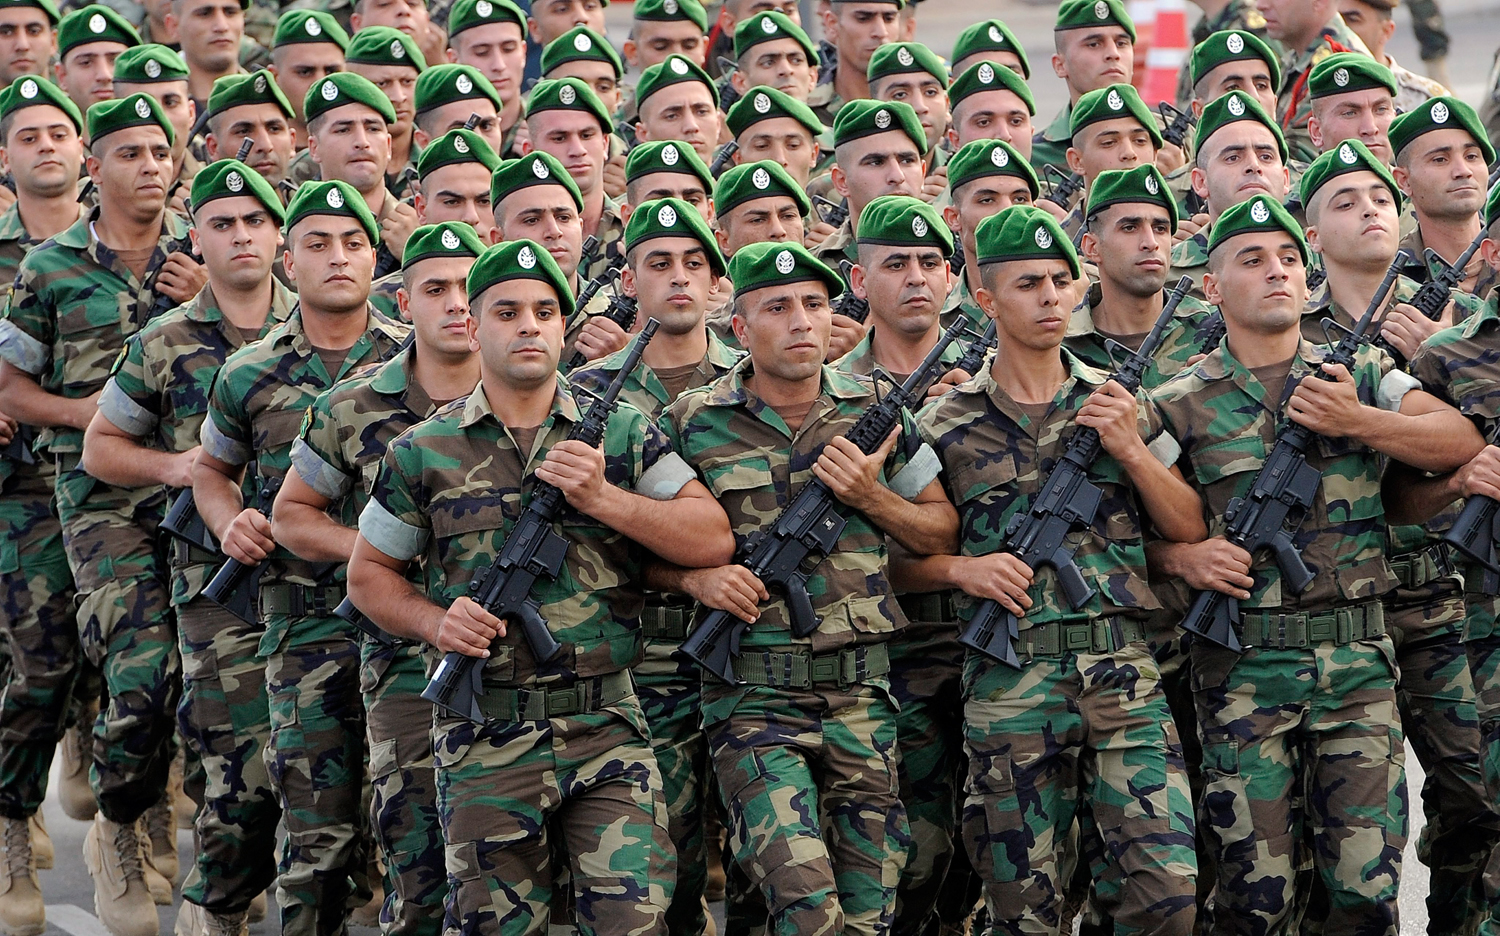 BEIRUT, LEBANON) — Lebanon celebrated Army Day on Friday with ... Heartbreak Images For Facebook